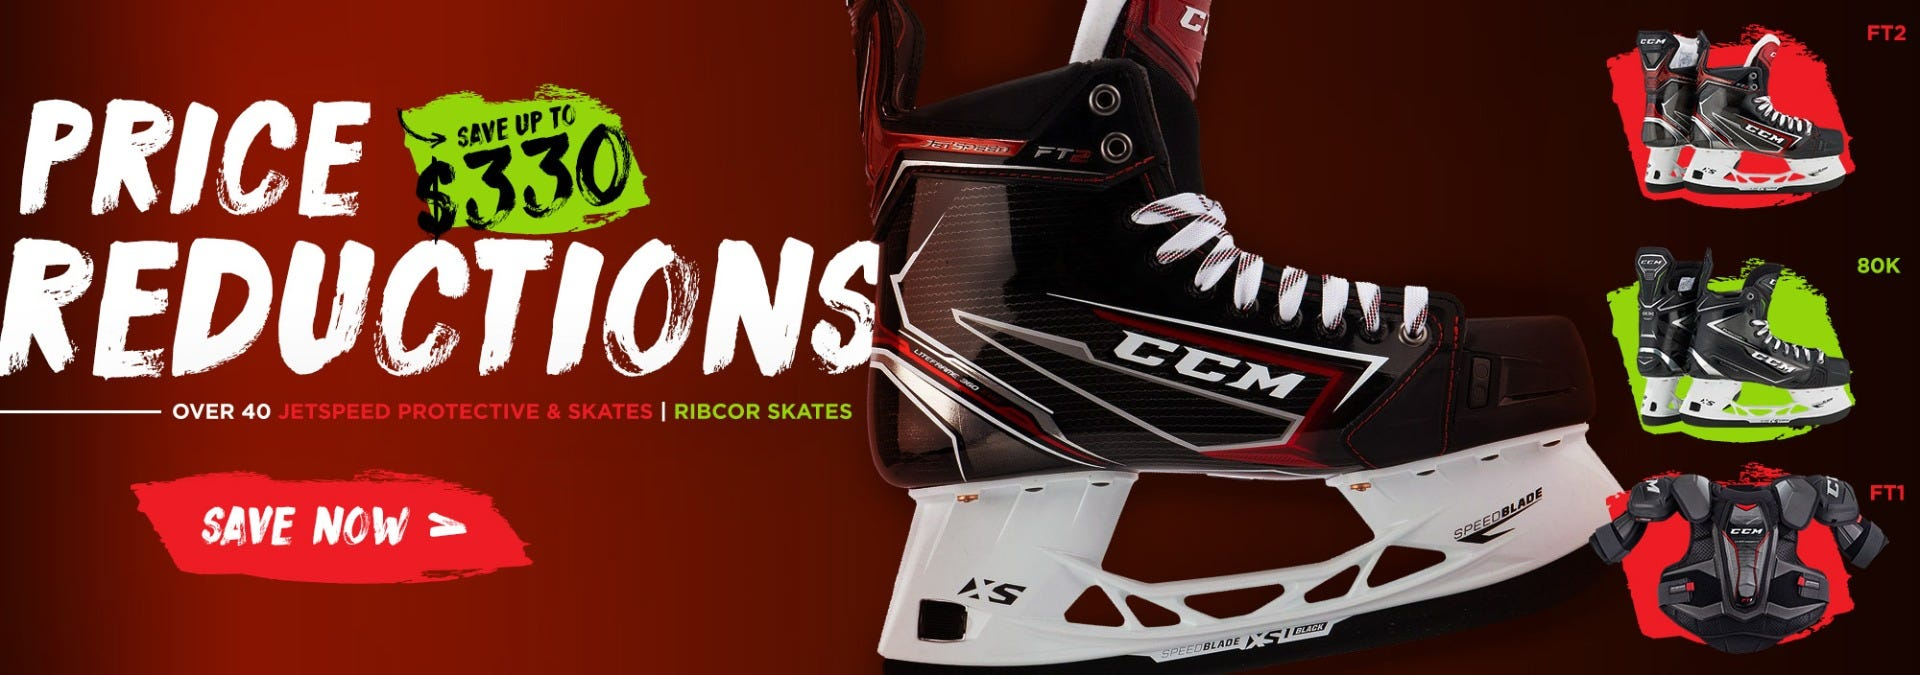 Save up to $330 on over 40 CCM JetSpeed protective & skates and RibCor skates